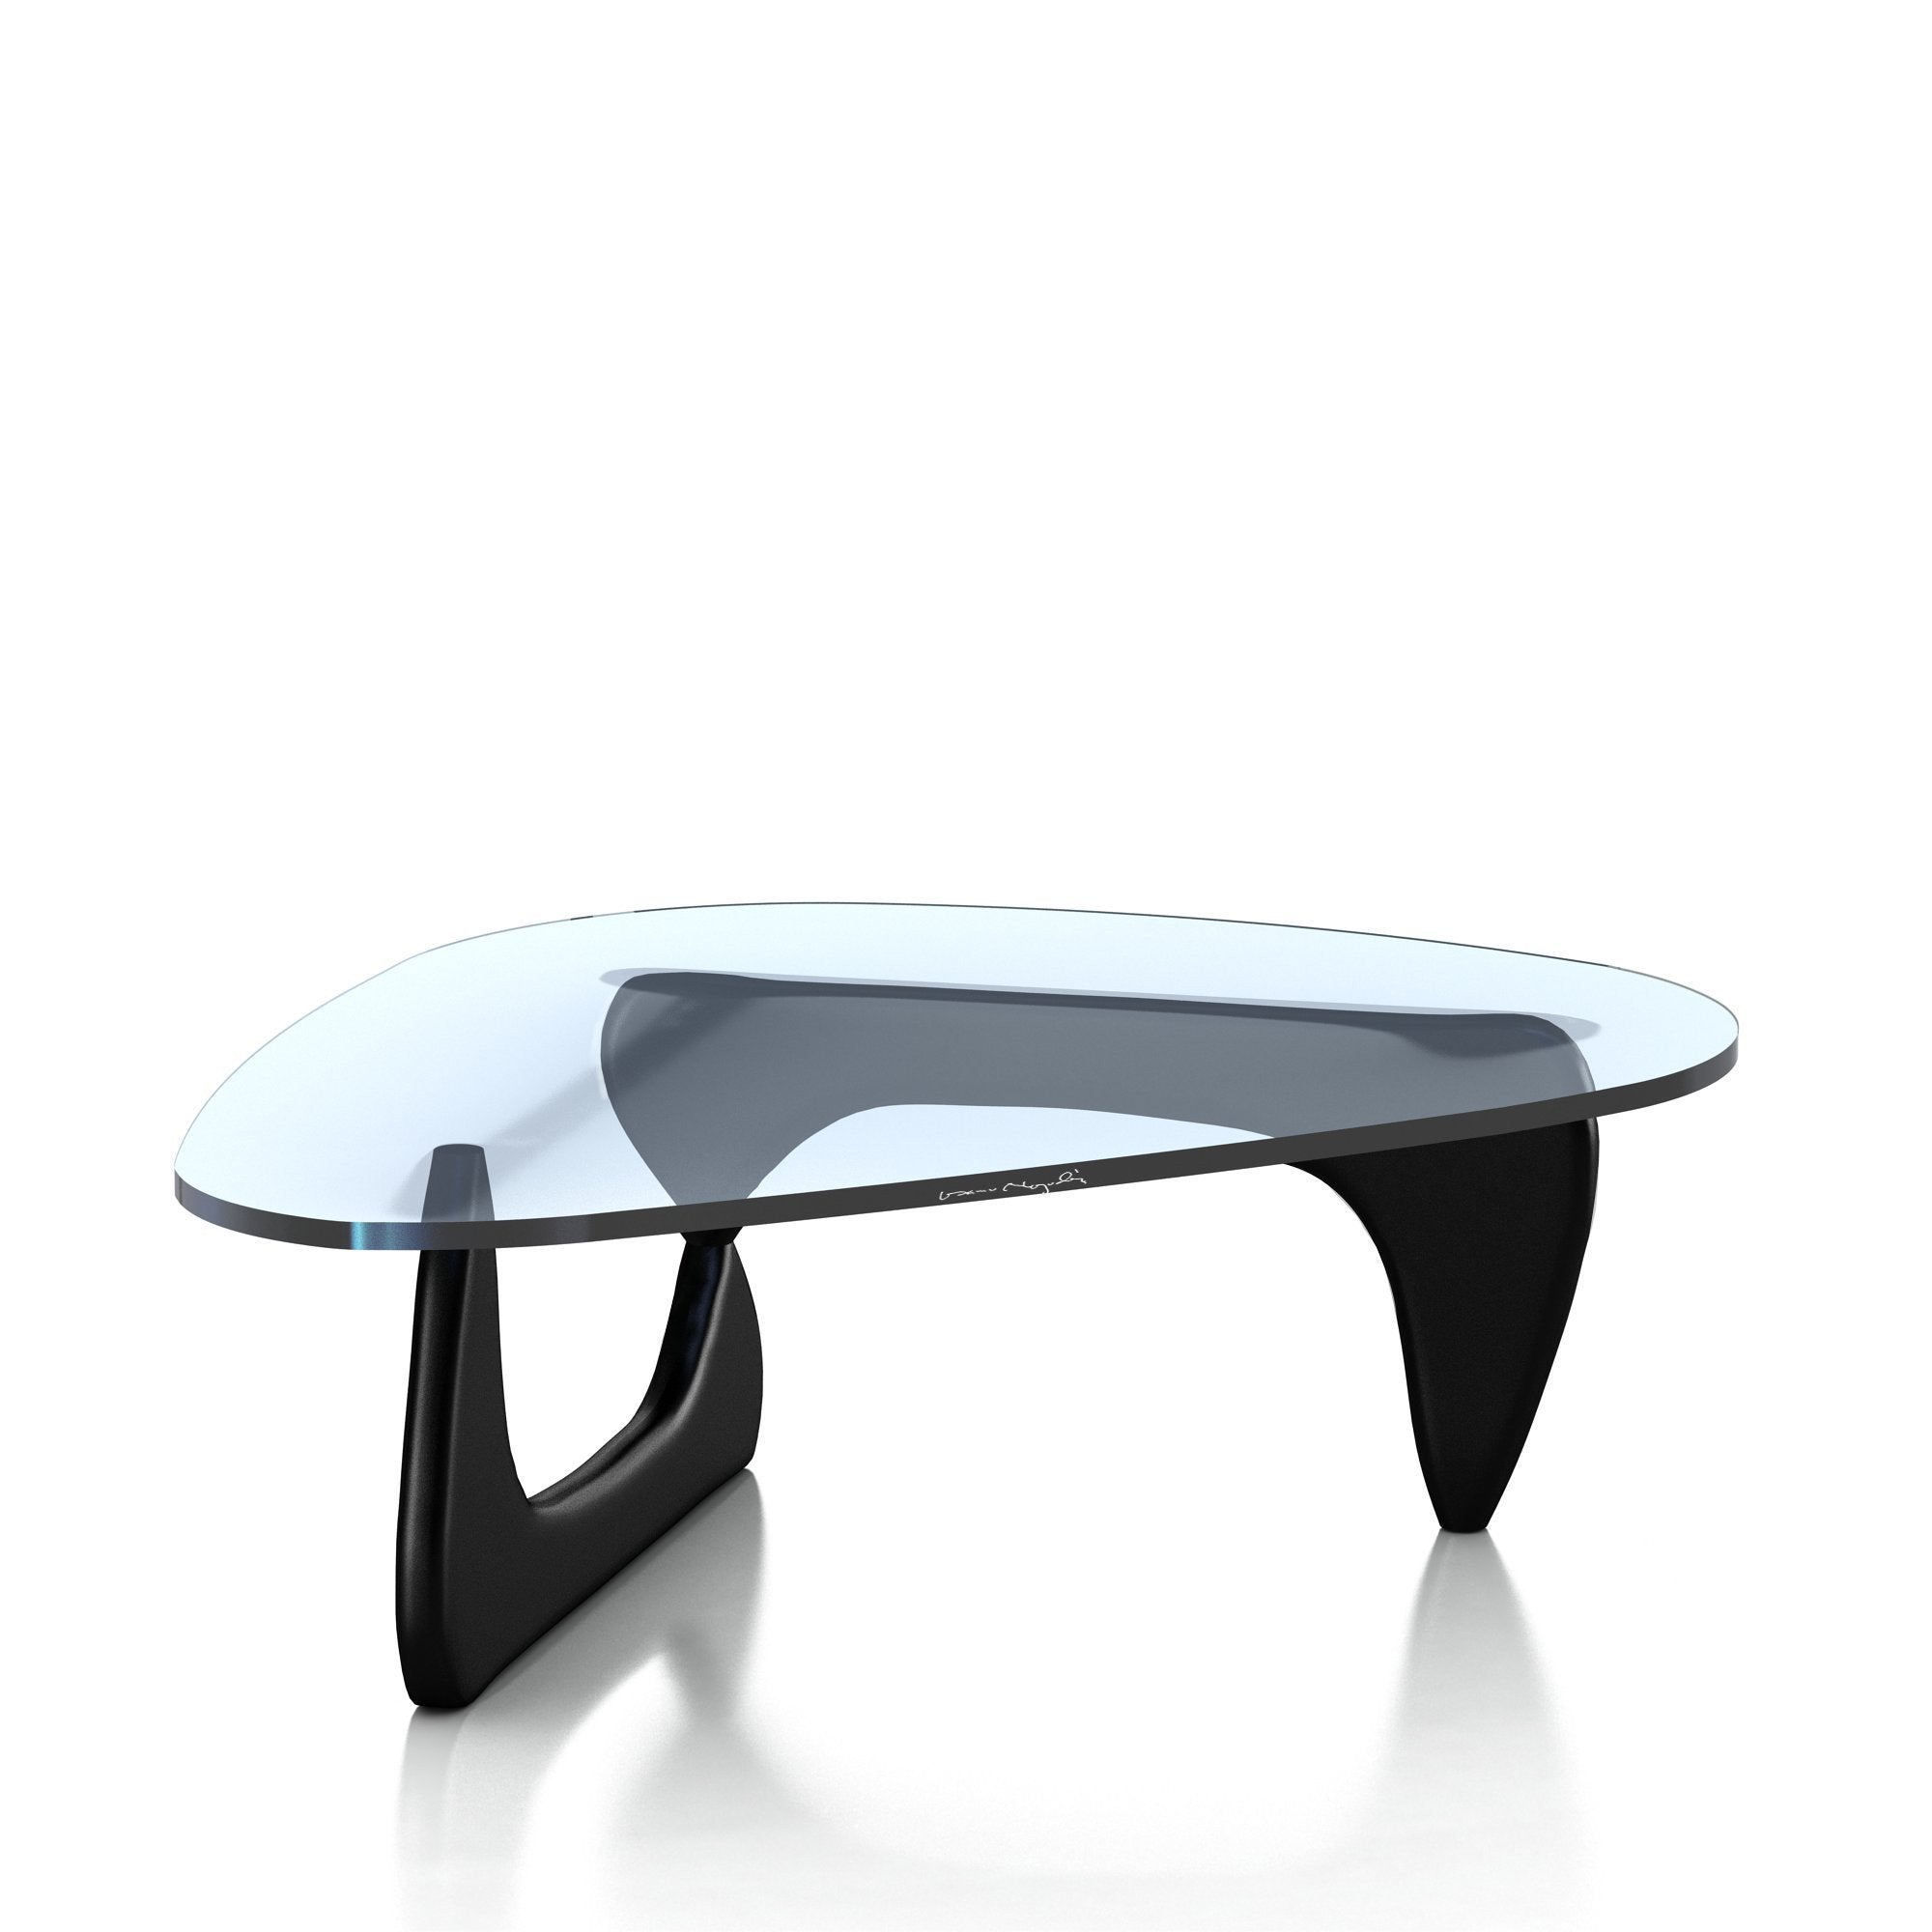 noguchi coffee table by herman miller. Black Bedroom Furniture Sets. Home Design Ideas